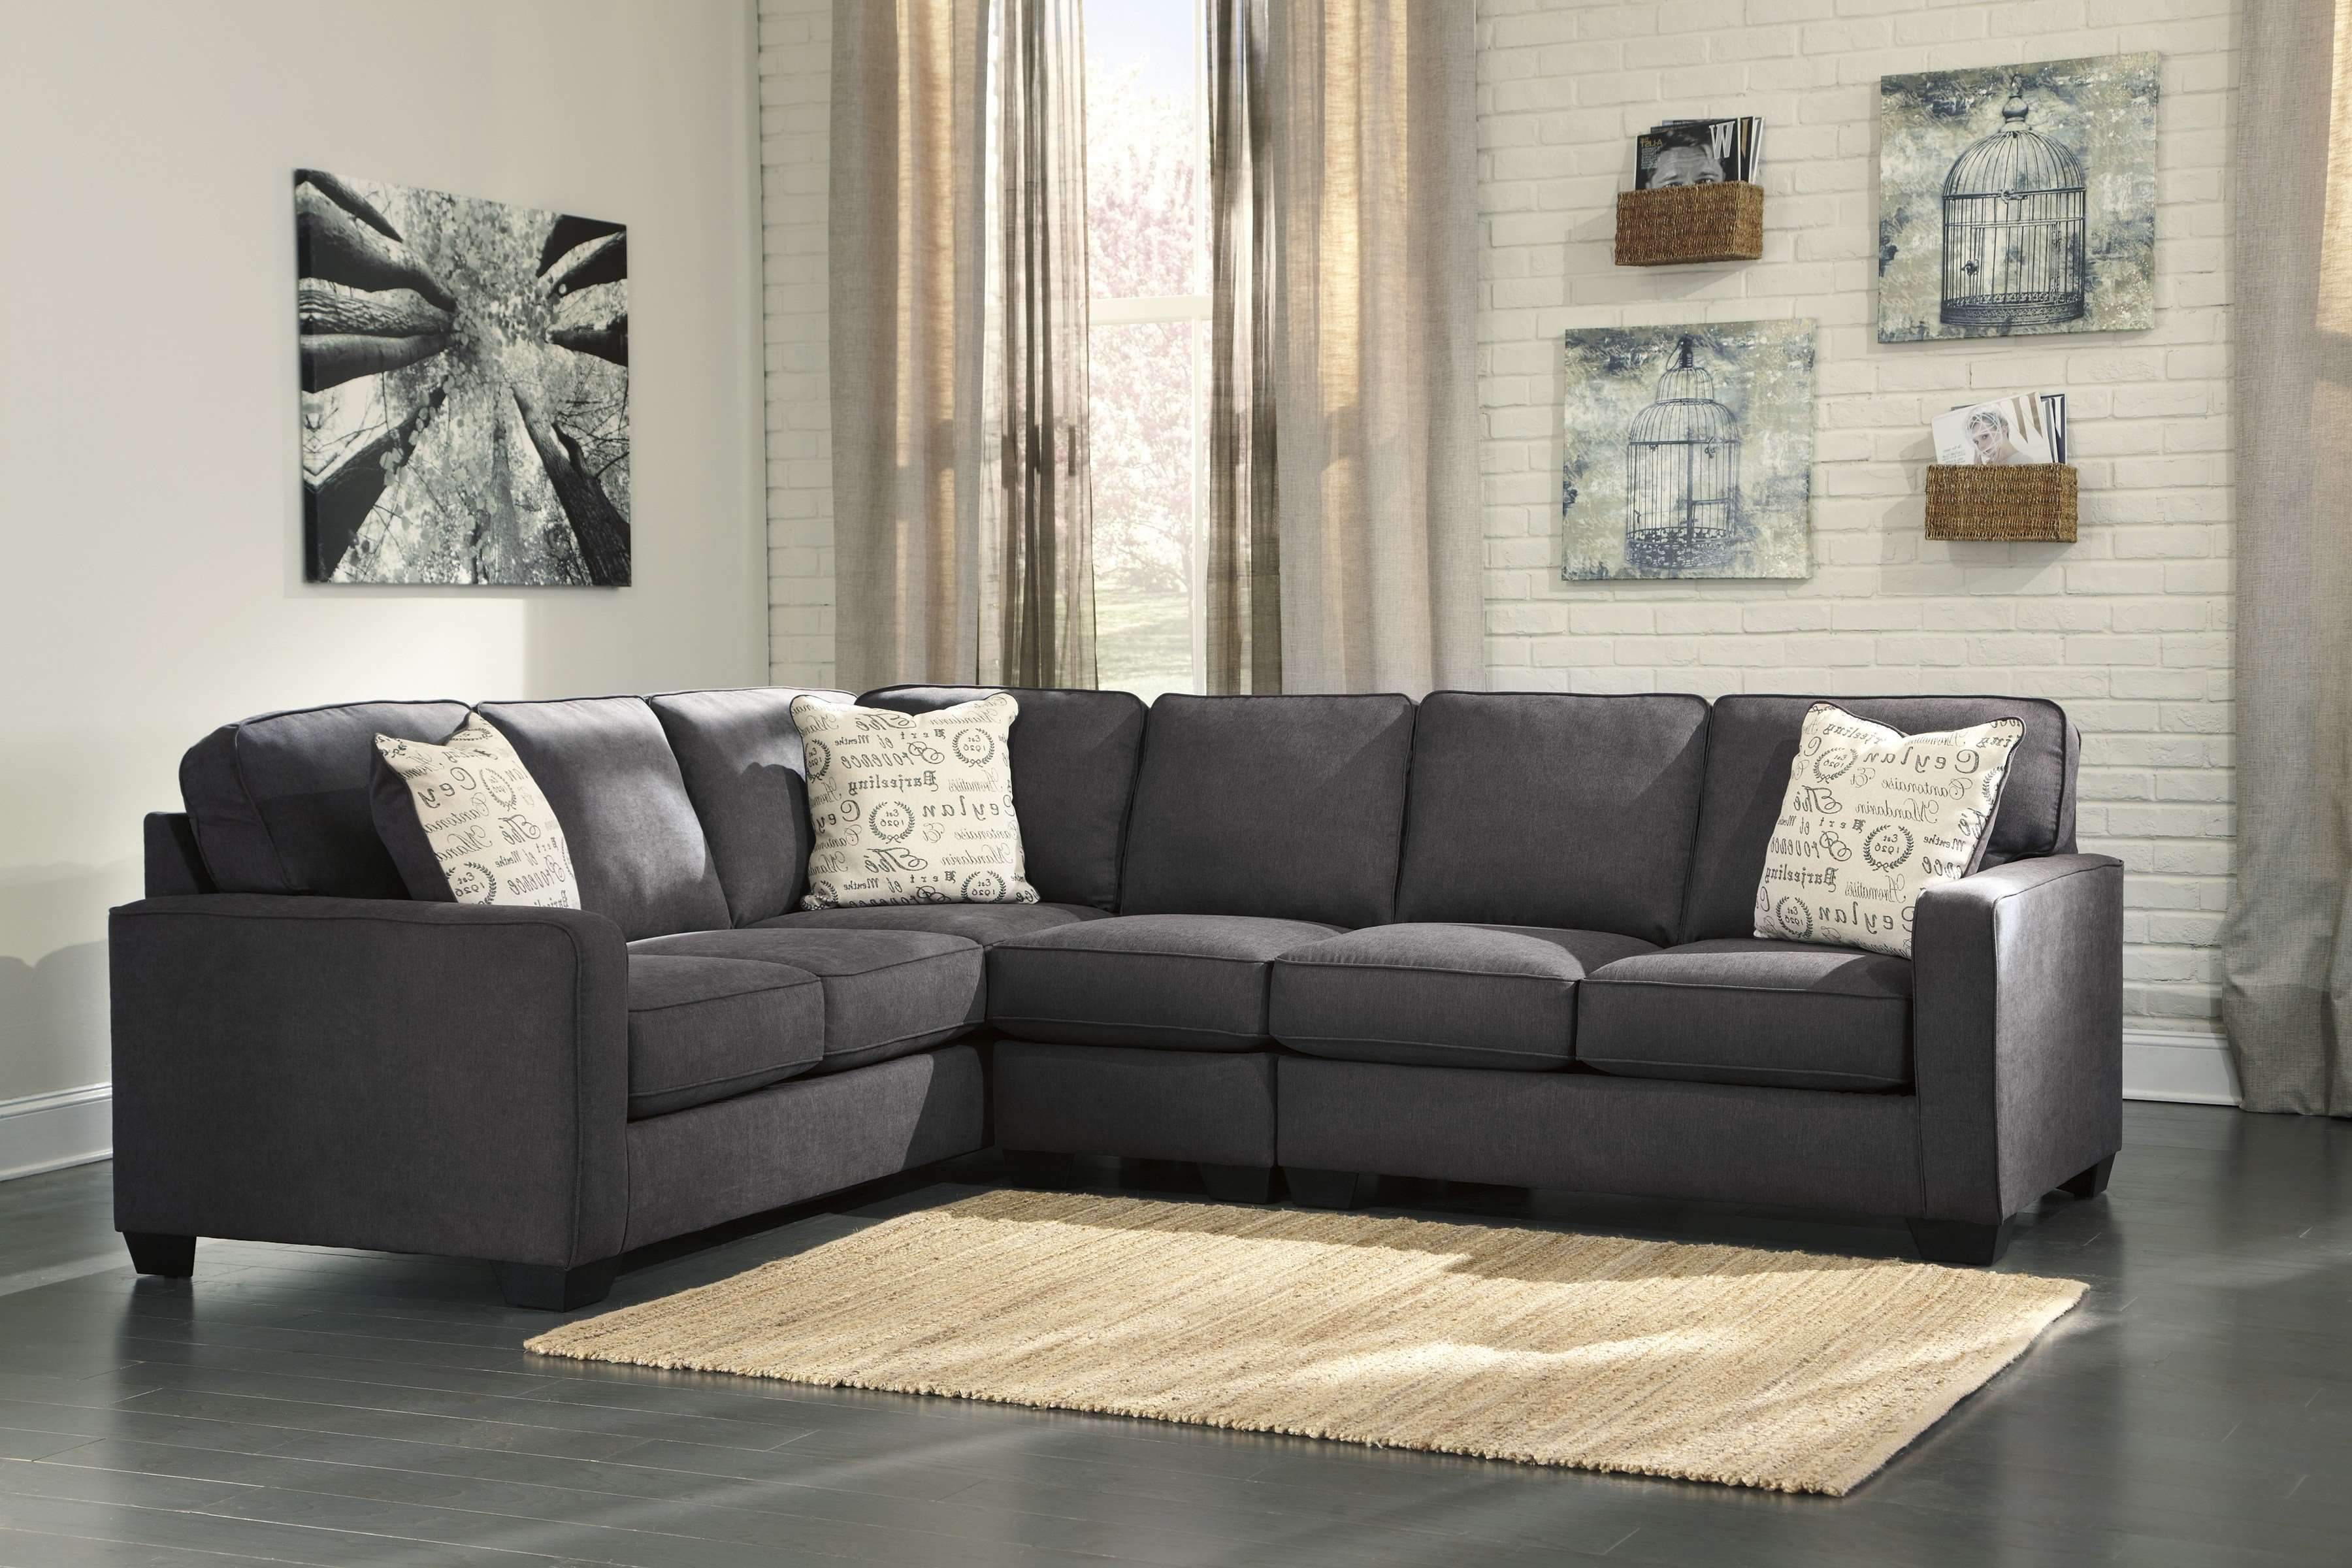 Contact Us Atlantic Bedding And Furniture Nashville Tn Living Room Red Ashley Furniture Ashley Furniture Sofas